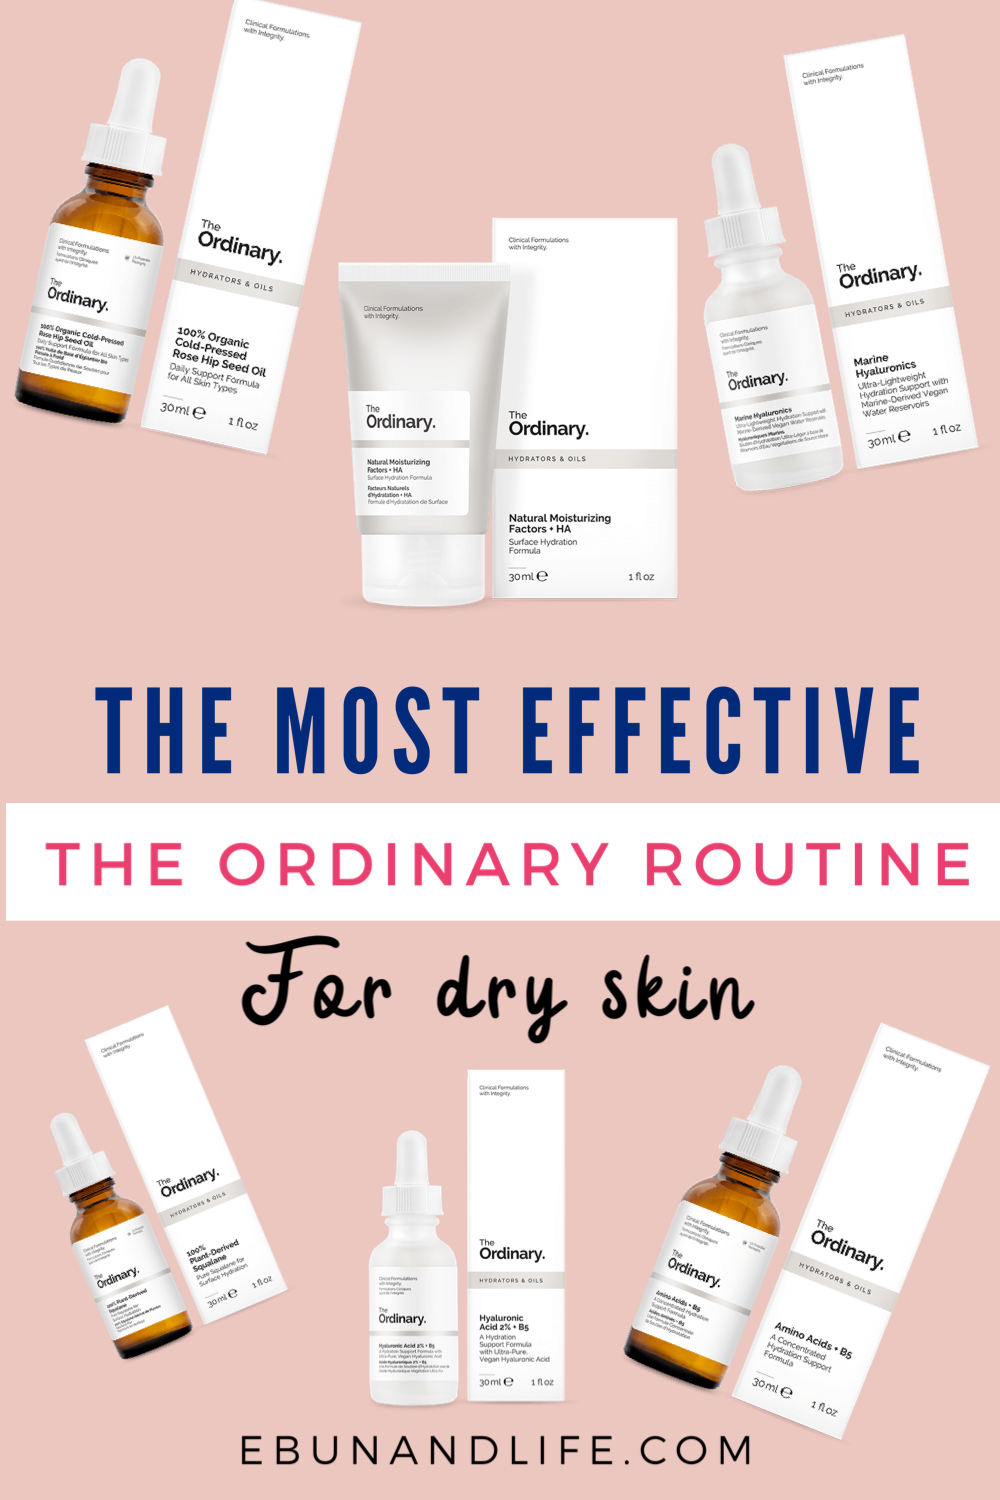 Do You Have Dryskin And You Re Looking For The Best Products To Use For Your Fac In 2020 Dry Skin Care Routine The Ordinary For Dry Skin The Ordinary Skincare Routine